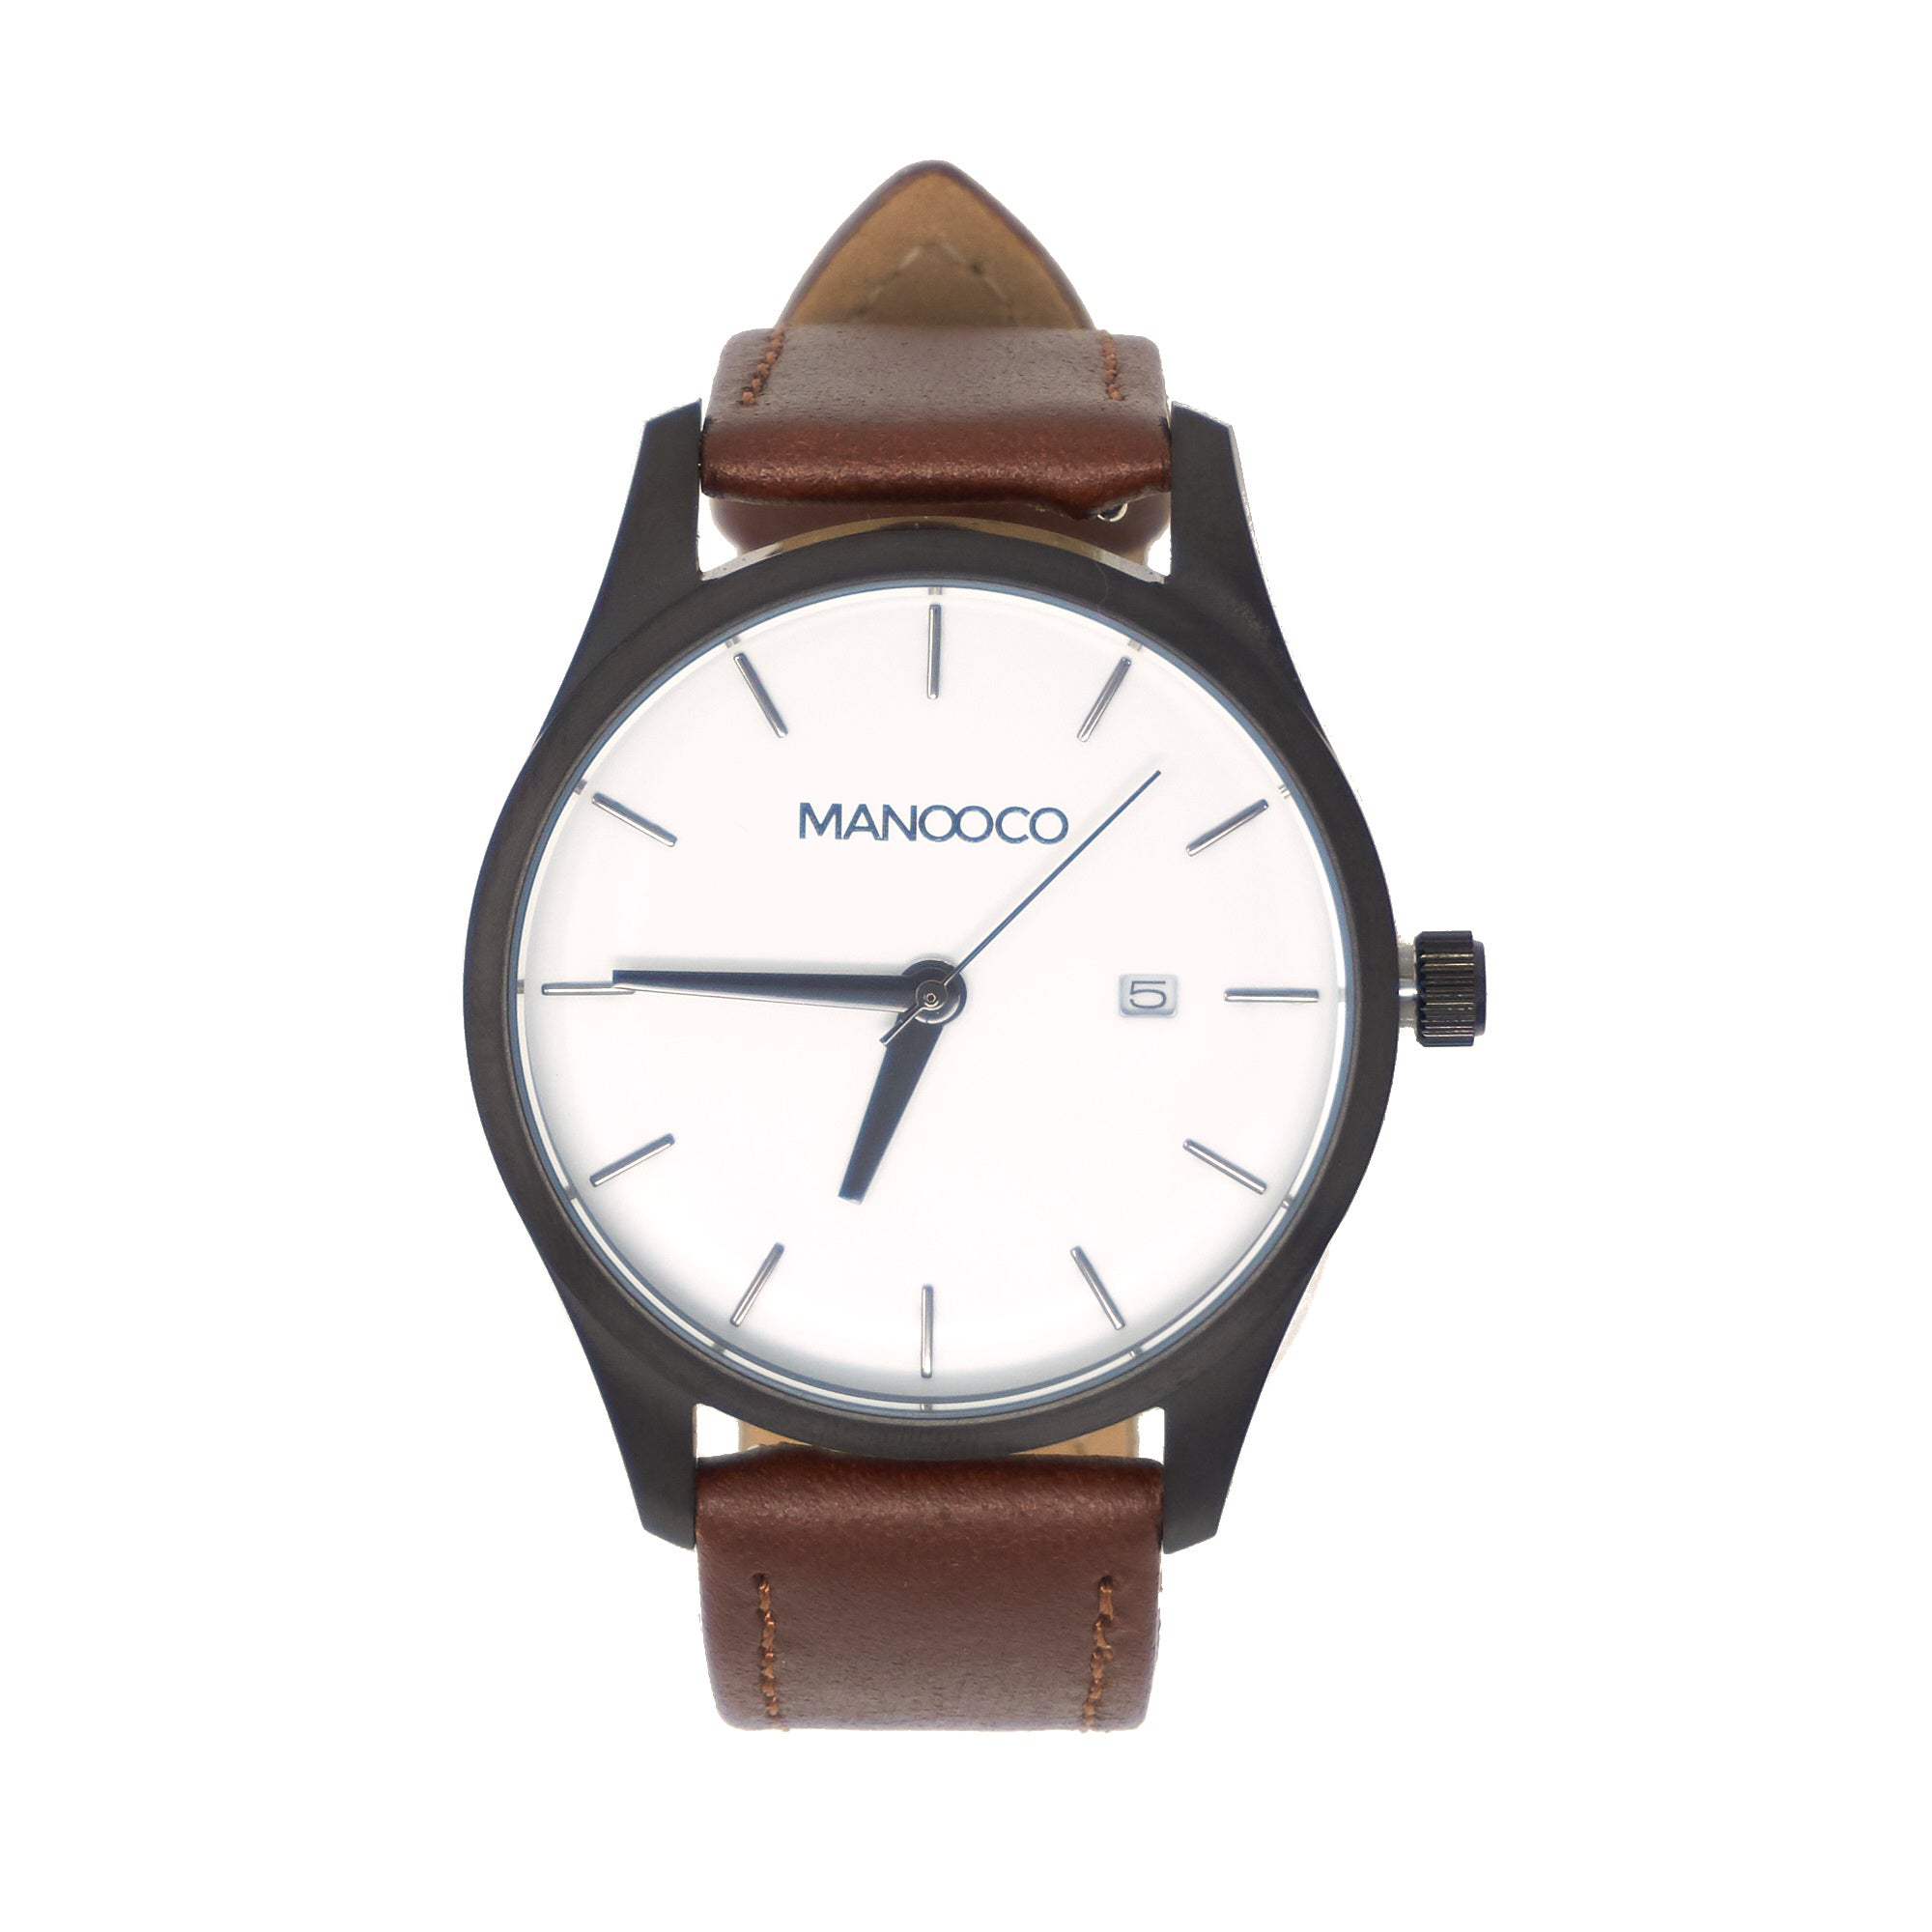 sol watches white products watch from obdelana manooco brown leather